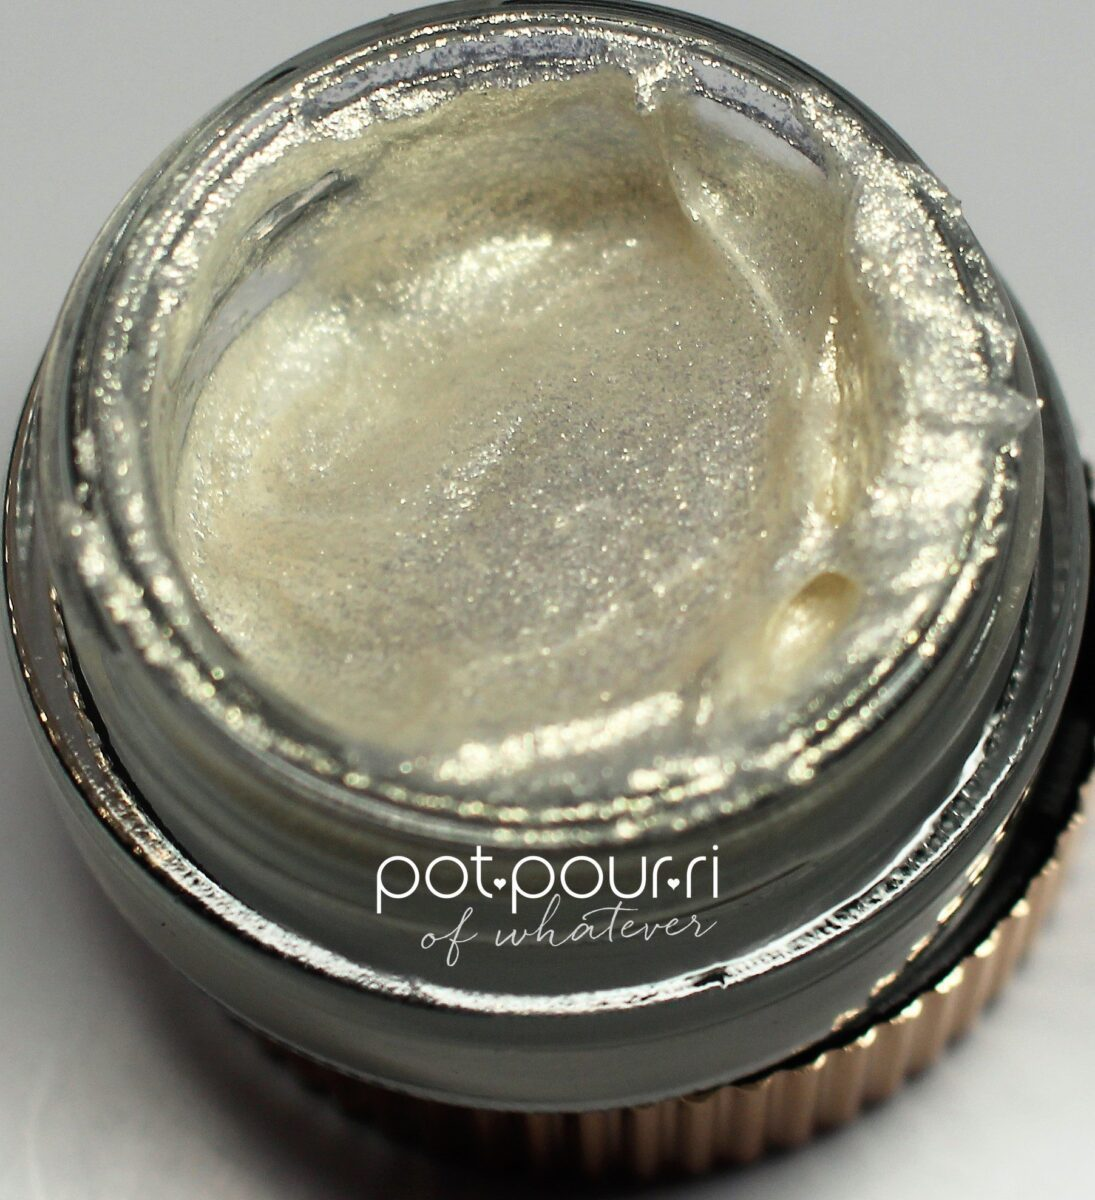 In the shadow pot Victoria Beckham and Estee Lauder Eye Foils Blonde Gold looks like a white metallic cream